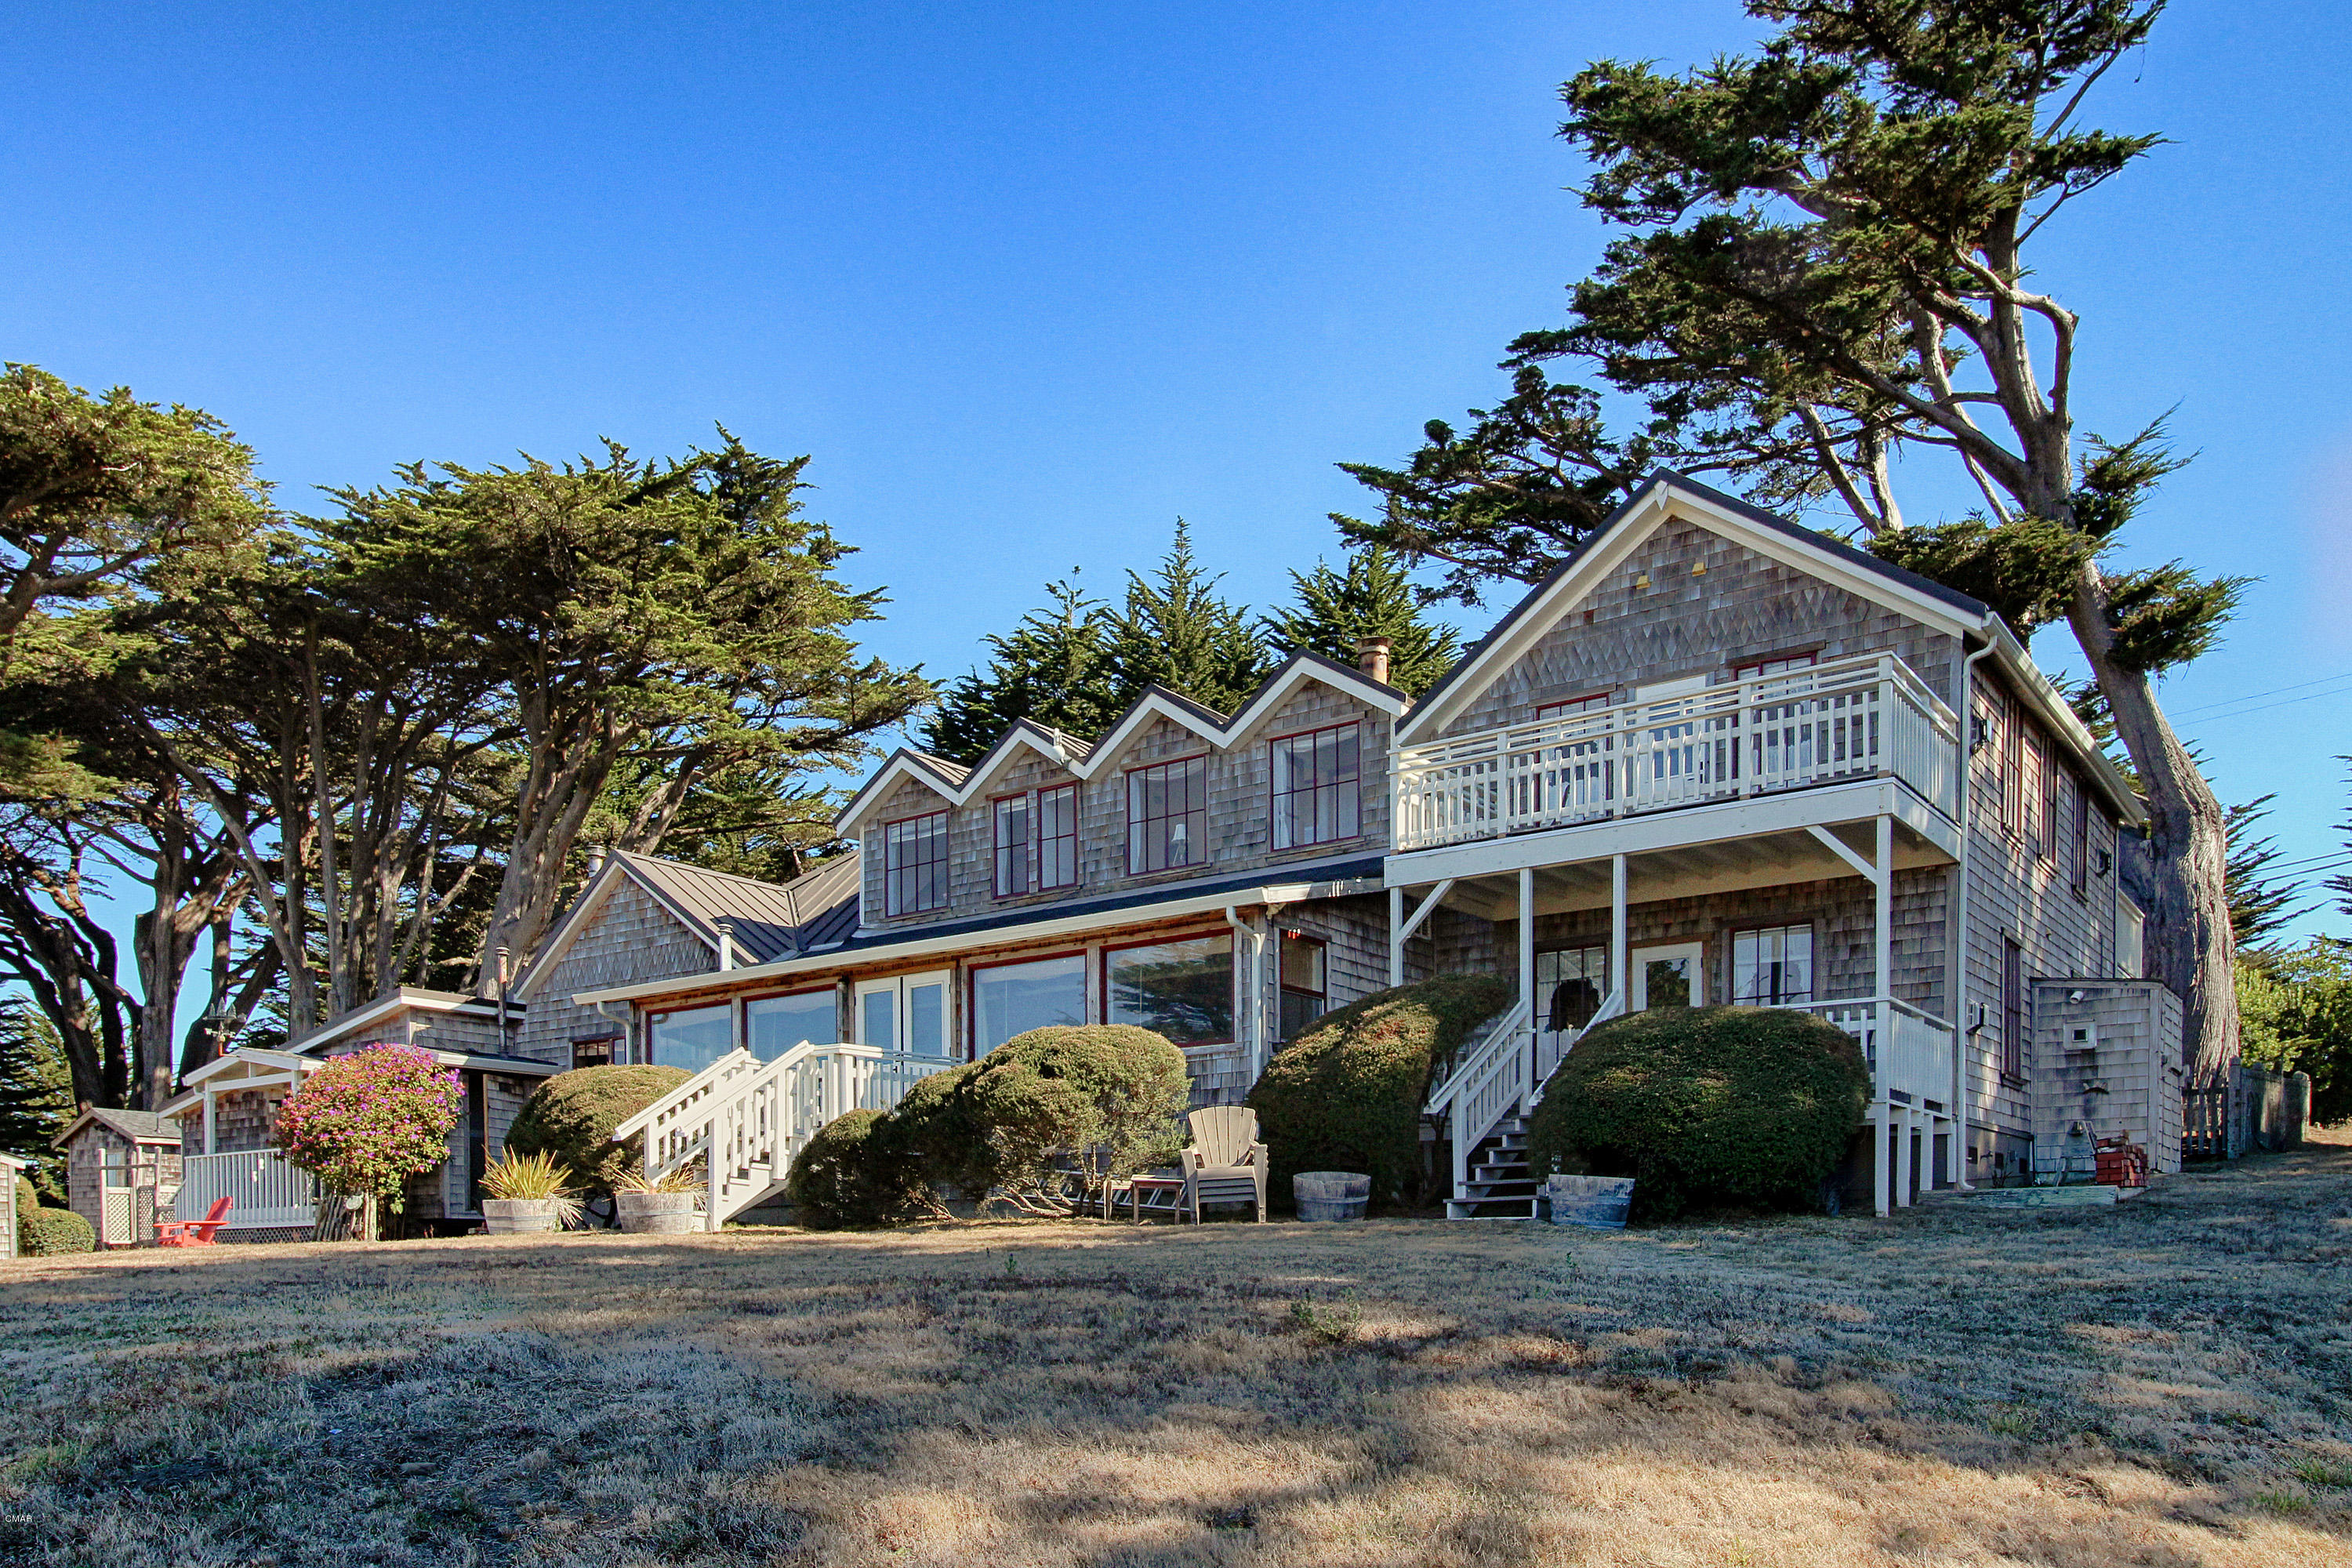 Living the dream...Your ticket to the magic of  the awesome Mendocino Coast!  The Fensalden Inn, whose name means ''The Land of Sea and Mist'' was built in the 1860's and is a coastal treasure filled to the brim with history and charm! Once a Wells Fargo Stage Coach stop, it has been extensively renovated  with care to retain the historical character. Located in Albion, it is 7.50 acres at 400' elevation which provides sweeping ocean views from almost every room on the property.  The Main Unit has 2 kitchens, 6 bedrooms, 6 1/2 baths, a welcoming Foyer, Living Room, Dining Room. and a spacious Sunroom. There are 3 additional detached units. All have kitchens, gas fireplaces, bedrooms, & bathrooms. A list of the property features is available upon request.